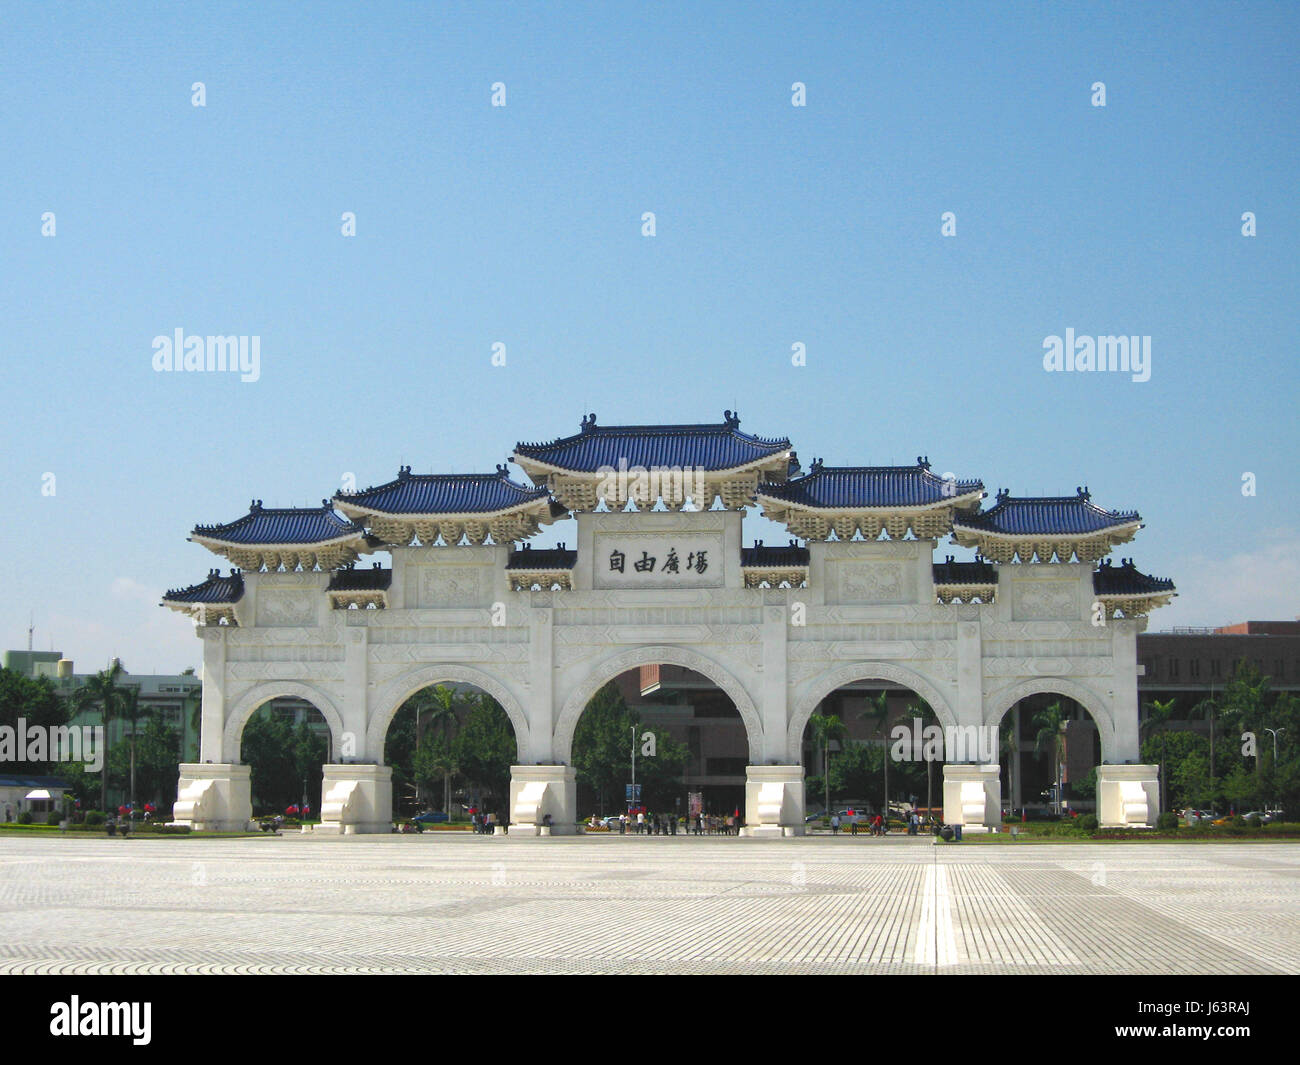 asia square taiwan building of historic importance china travel city town asia Stock Photo